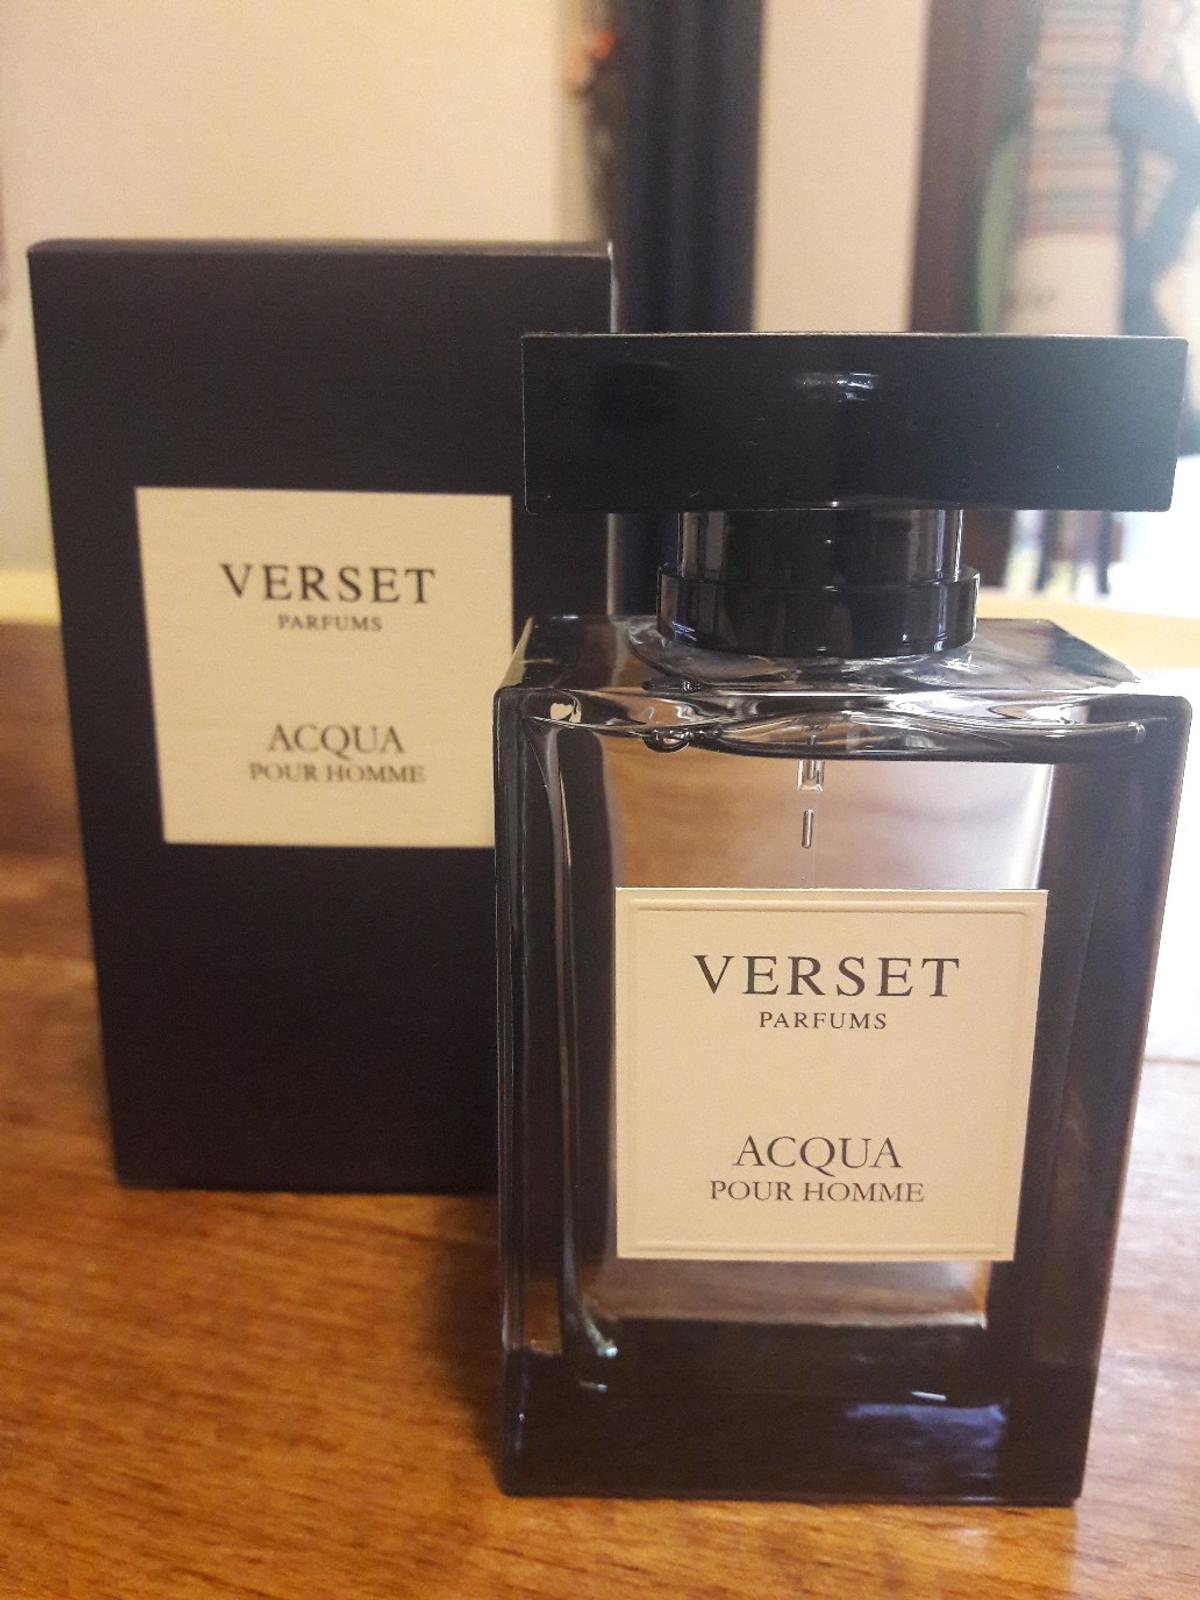 Profumo Verset Acqua Pour Homme In 2014 Milano For 1200 For Sale